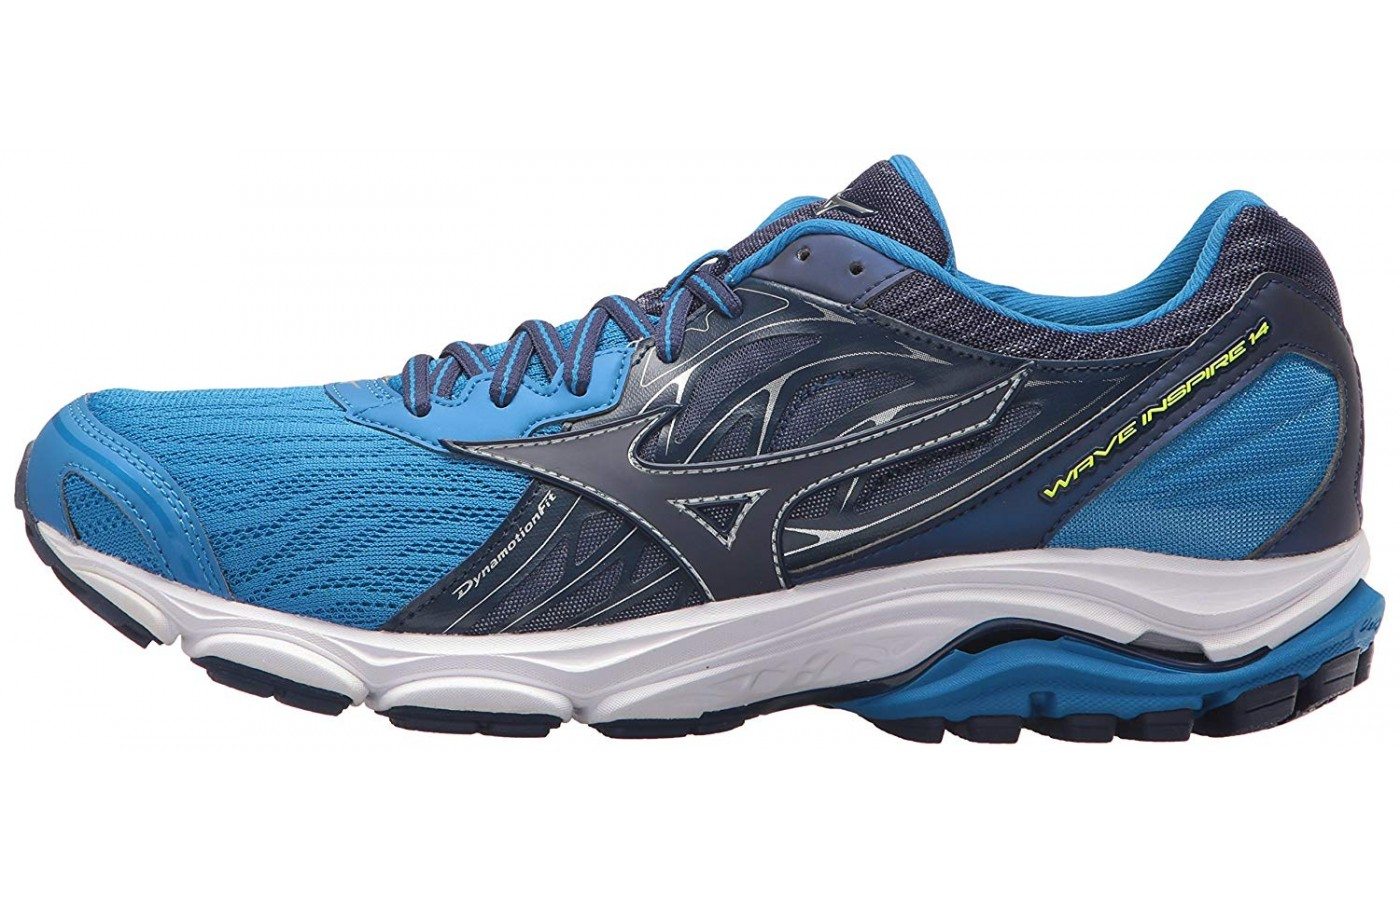 The Mizuno Wave Inspire 14 has very soft cushioning